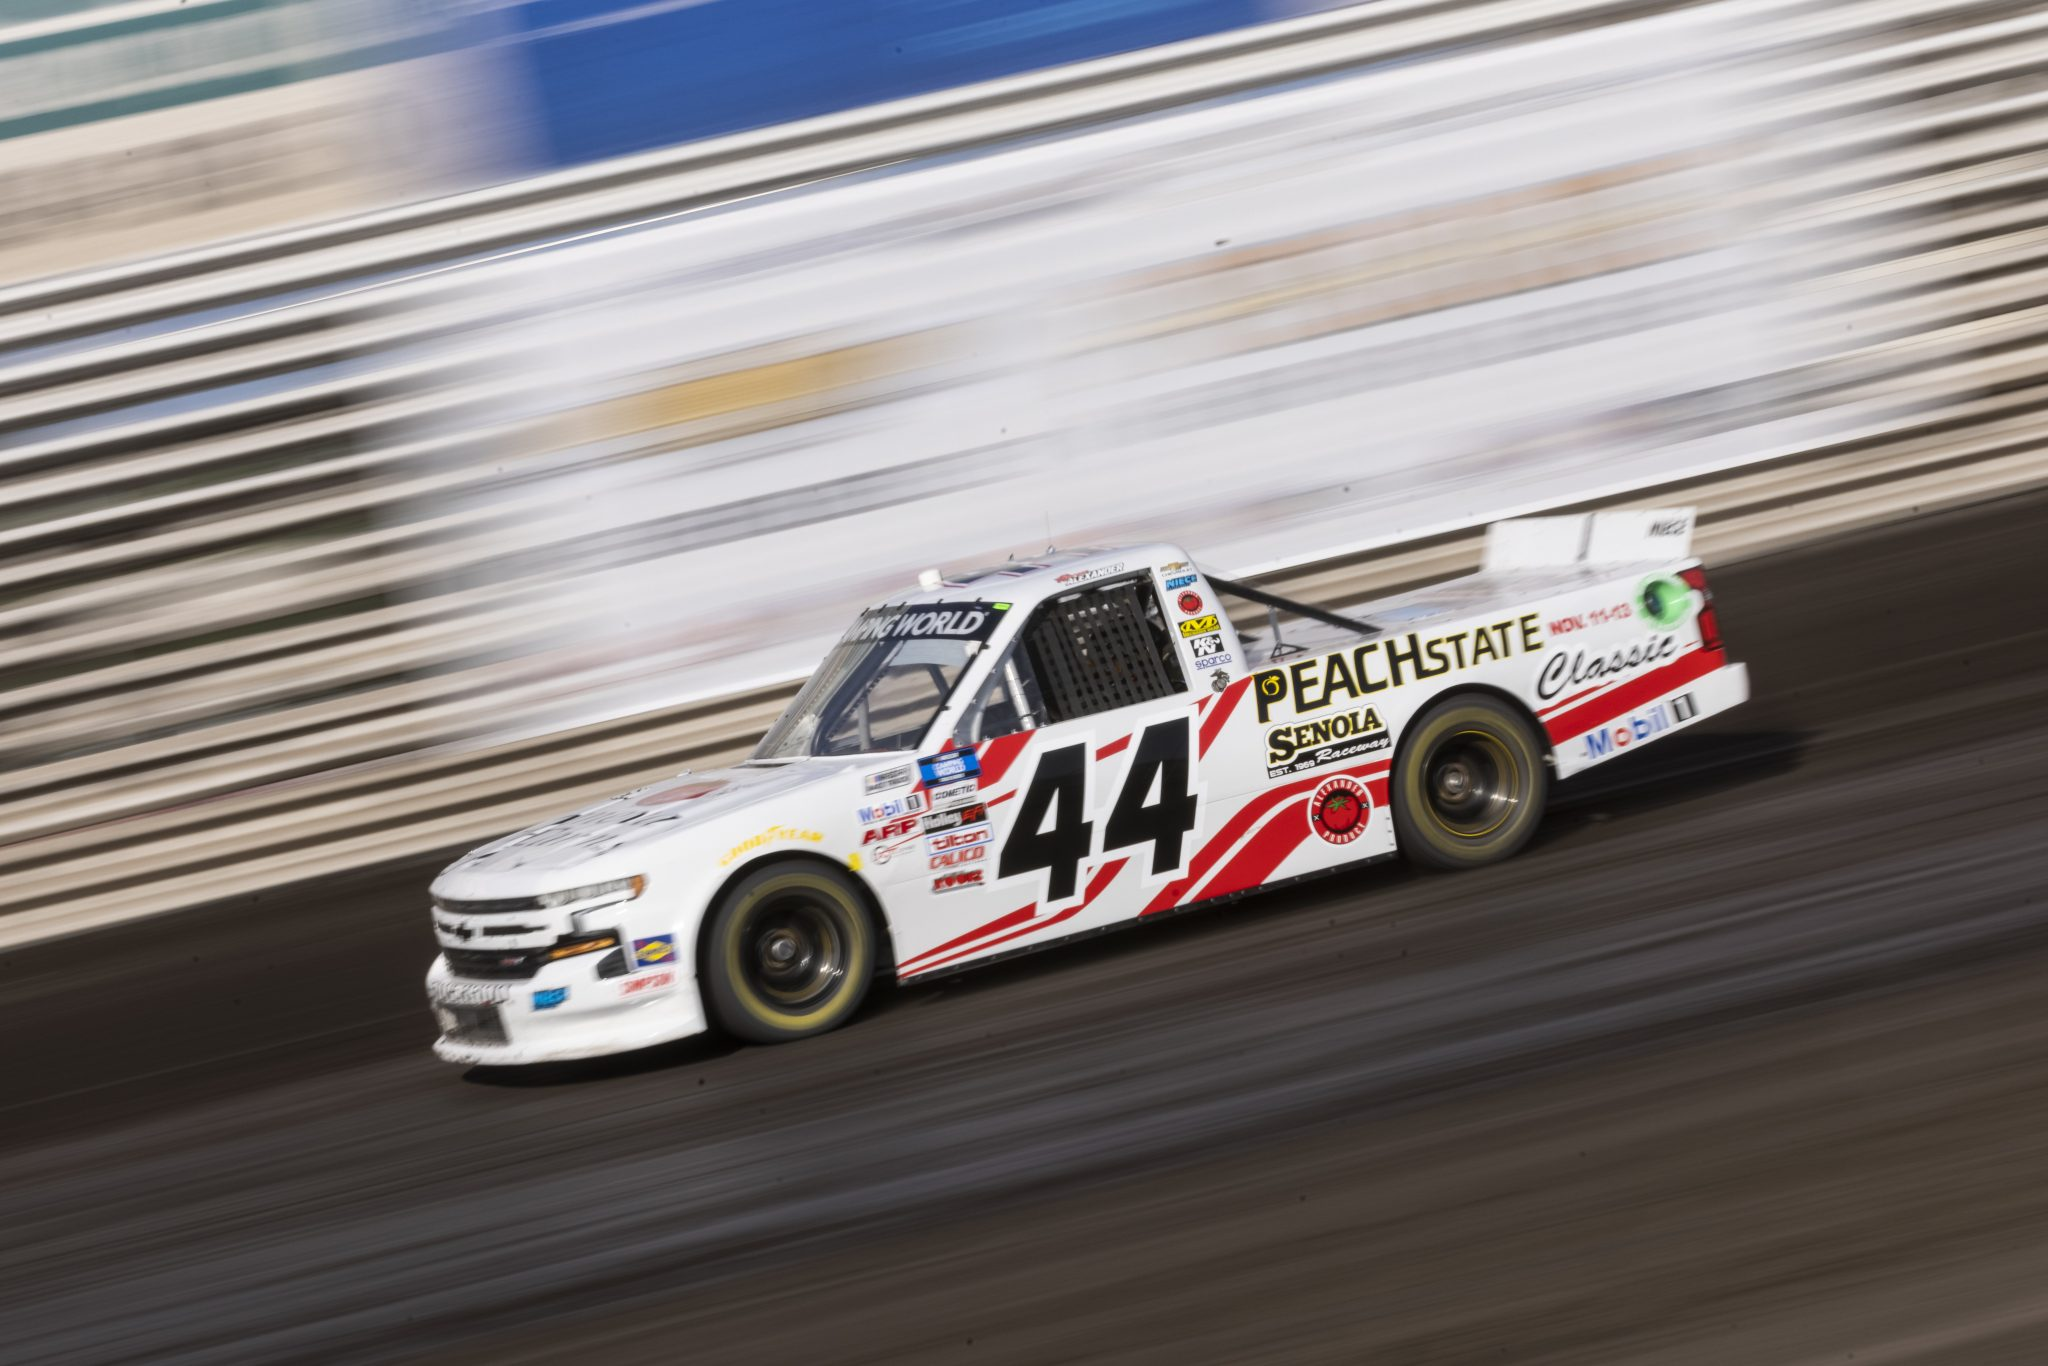 KNOXVILLE, IOWA - JULY 08: Morgan Alexander, driver of the #44 Geneva Farms Chevrolet, drives during practice for the NASCAR Camping World Truck Series Corn Belt 150 presented by Premier Chevy Dealers at Knoxville Raceway on July 08, 2021 in Knoxville, Iowa. (Photo by James Gilbert/Getty Images) | Getty Images